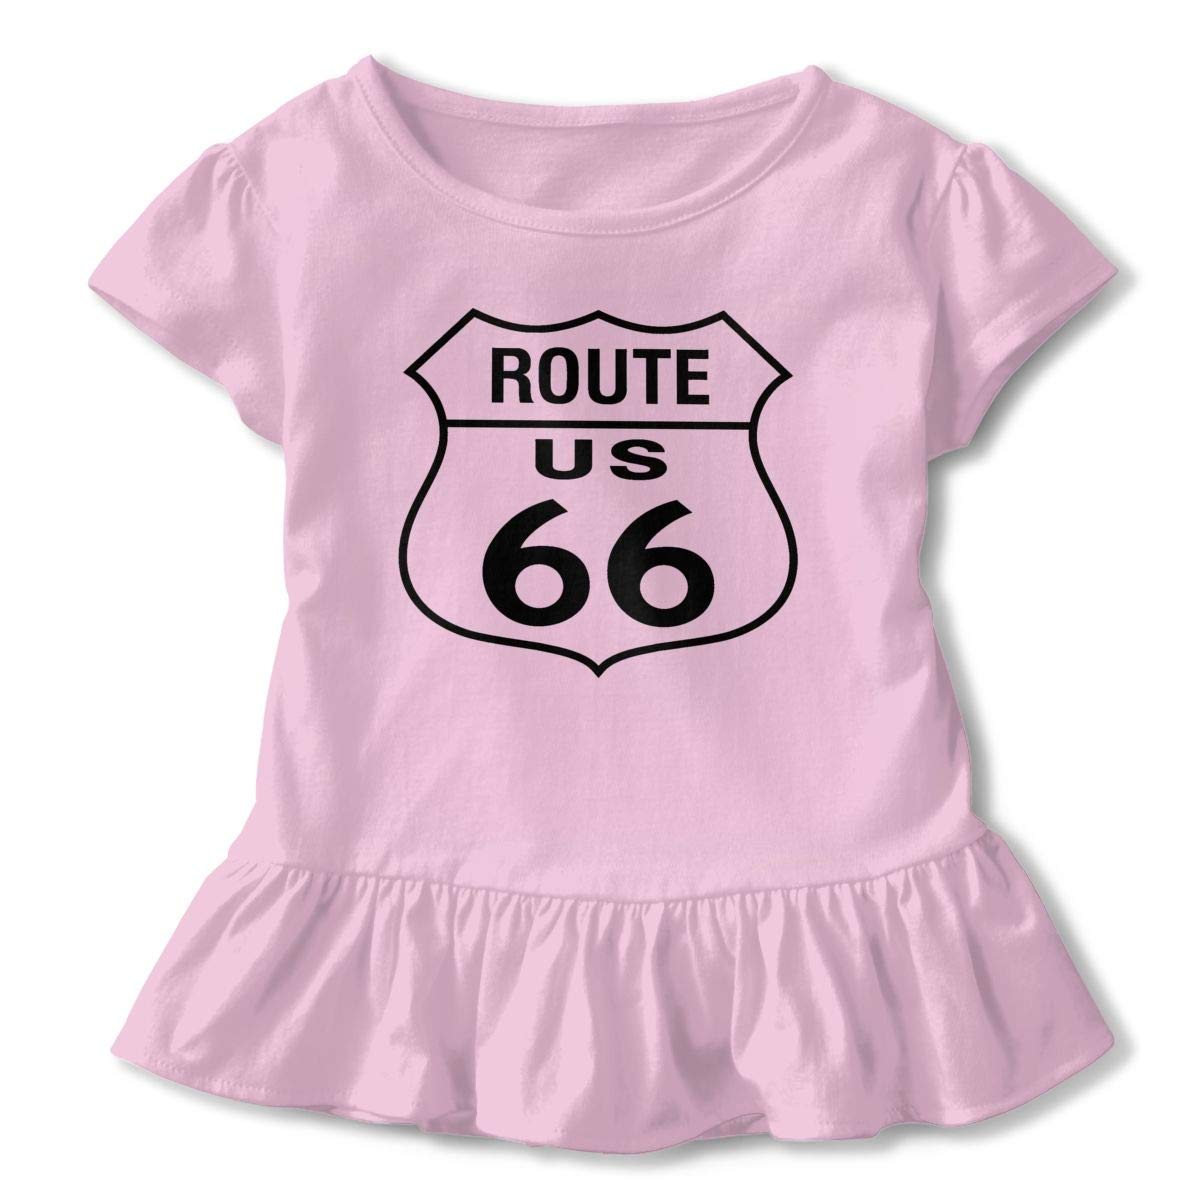 JVNSS Route 66 T-Shirt Baby Girl Flounced T Shirts Fashion Graphic T-Shirt for 2-6T Baby Girls